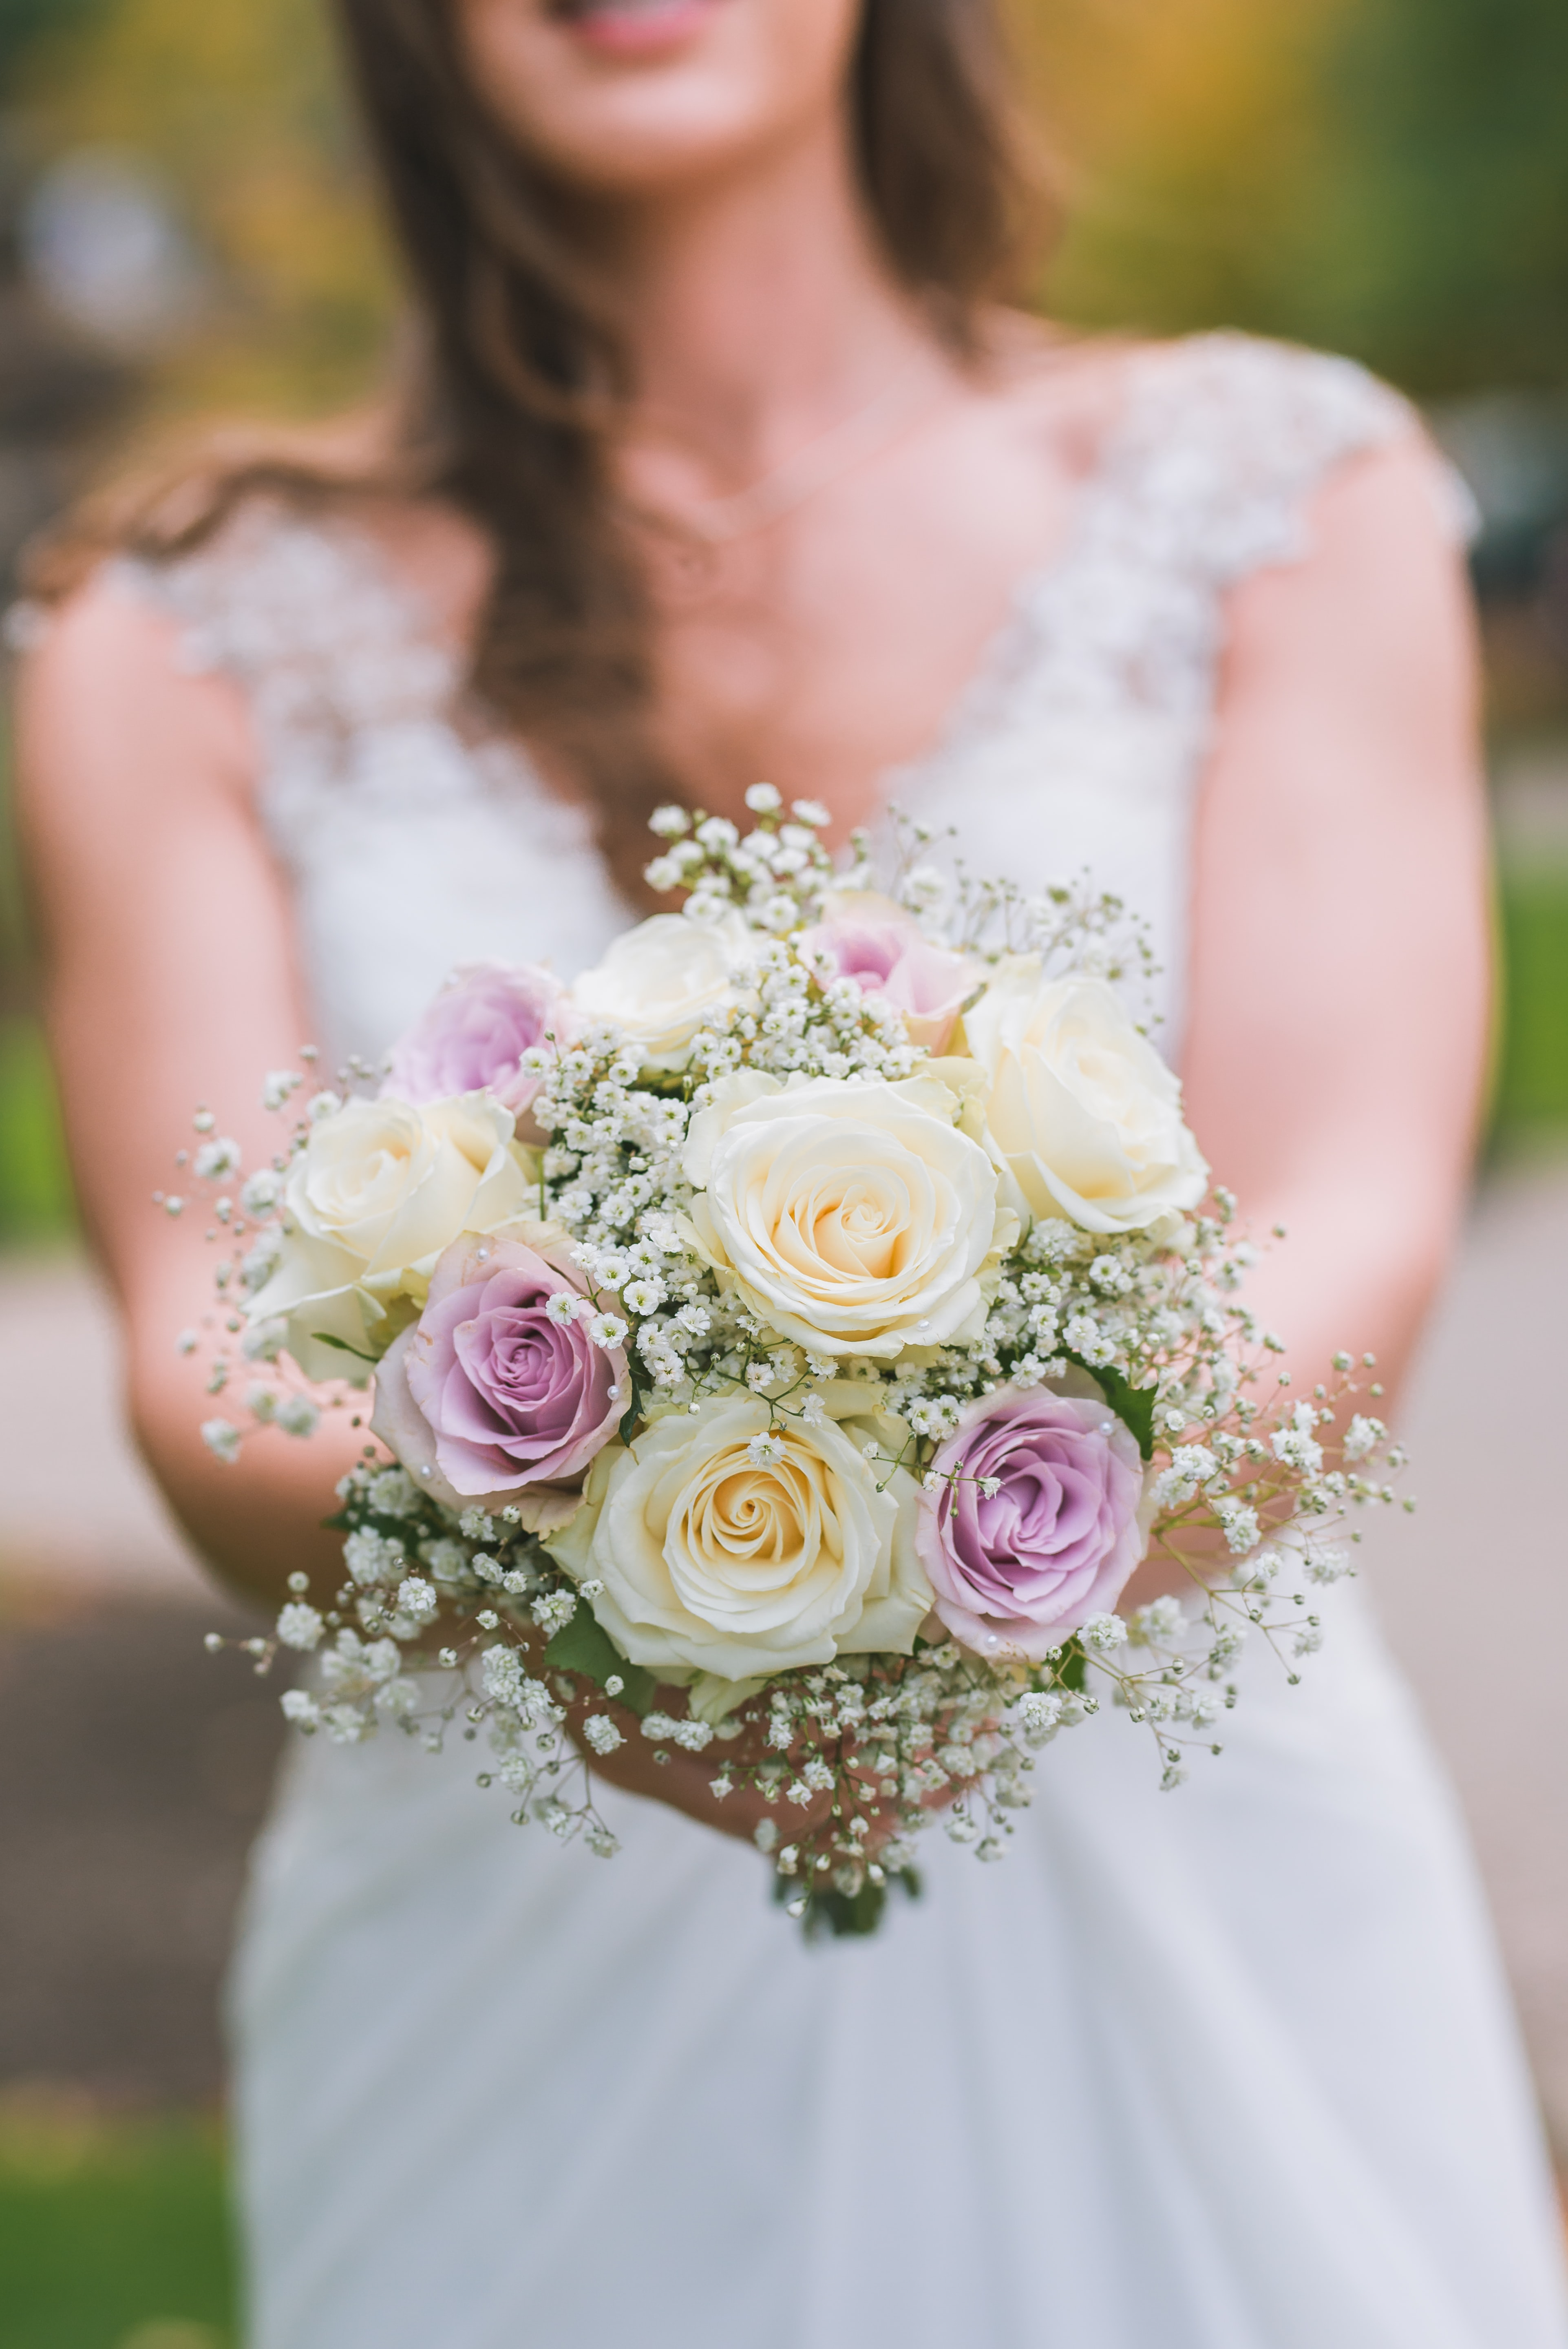 woman holding white and purple bouquet selective focus photography